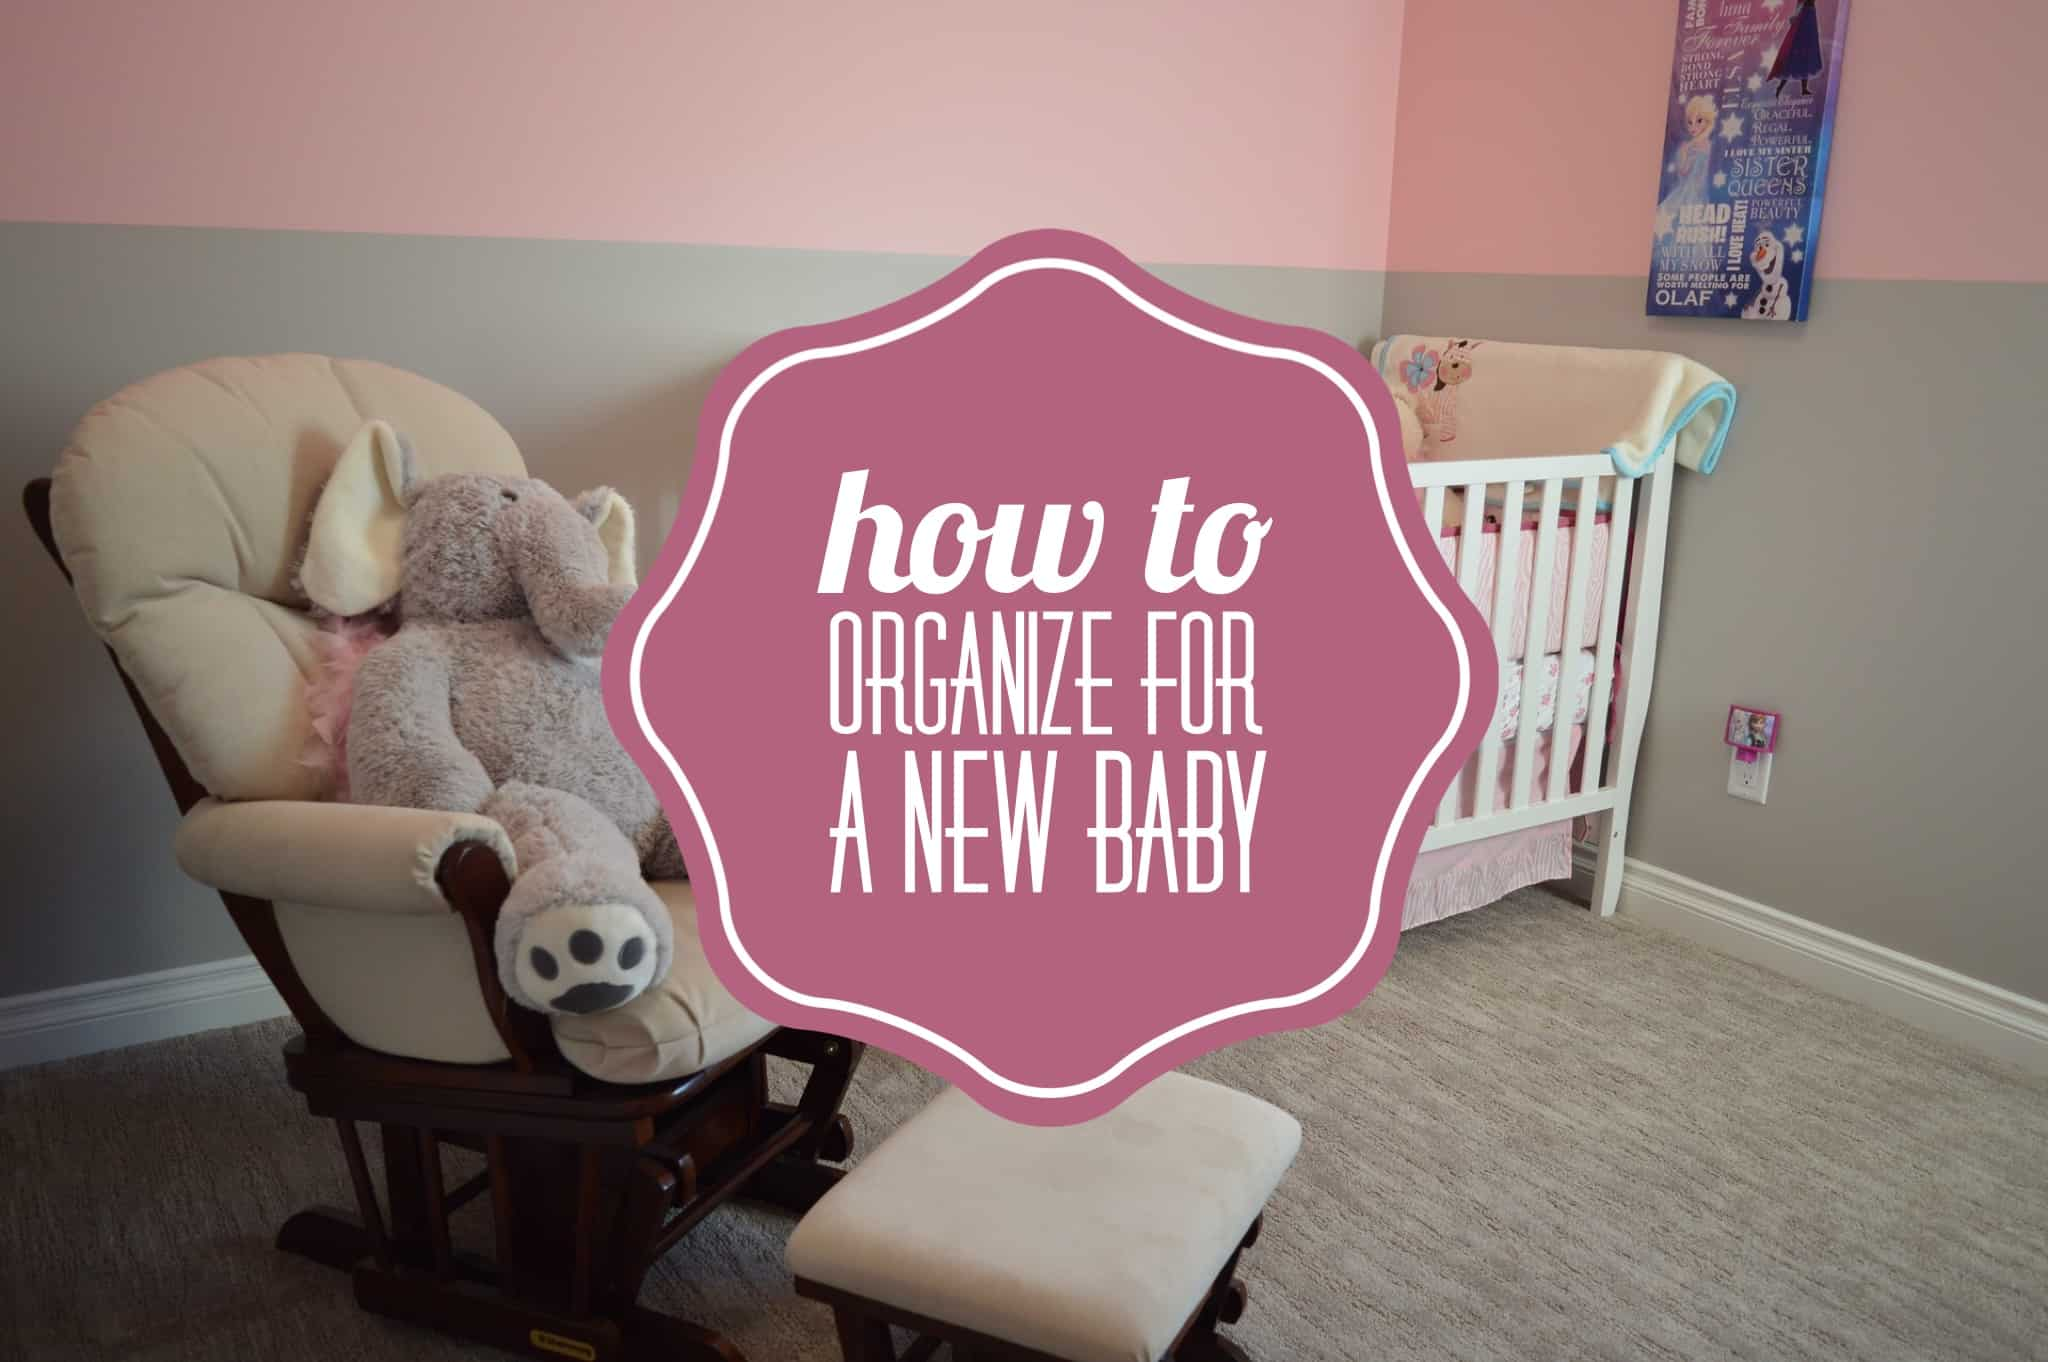 How to Organize for a New Baby Title